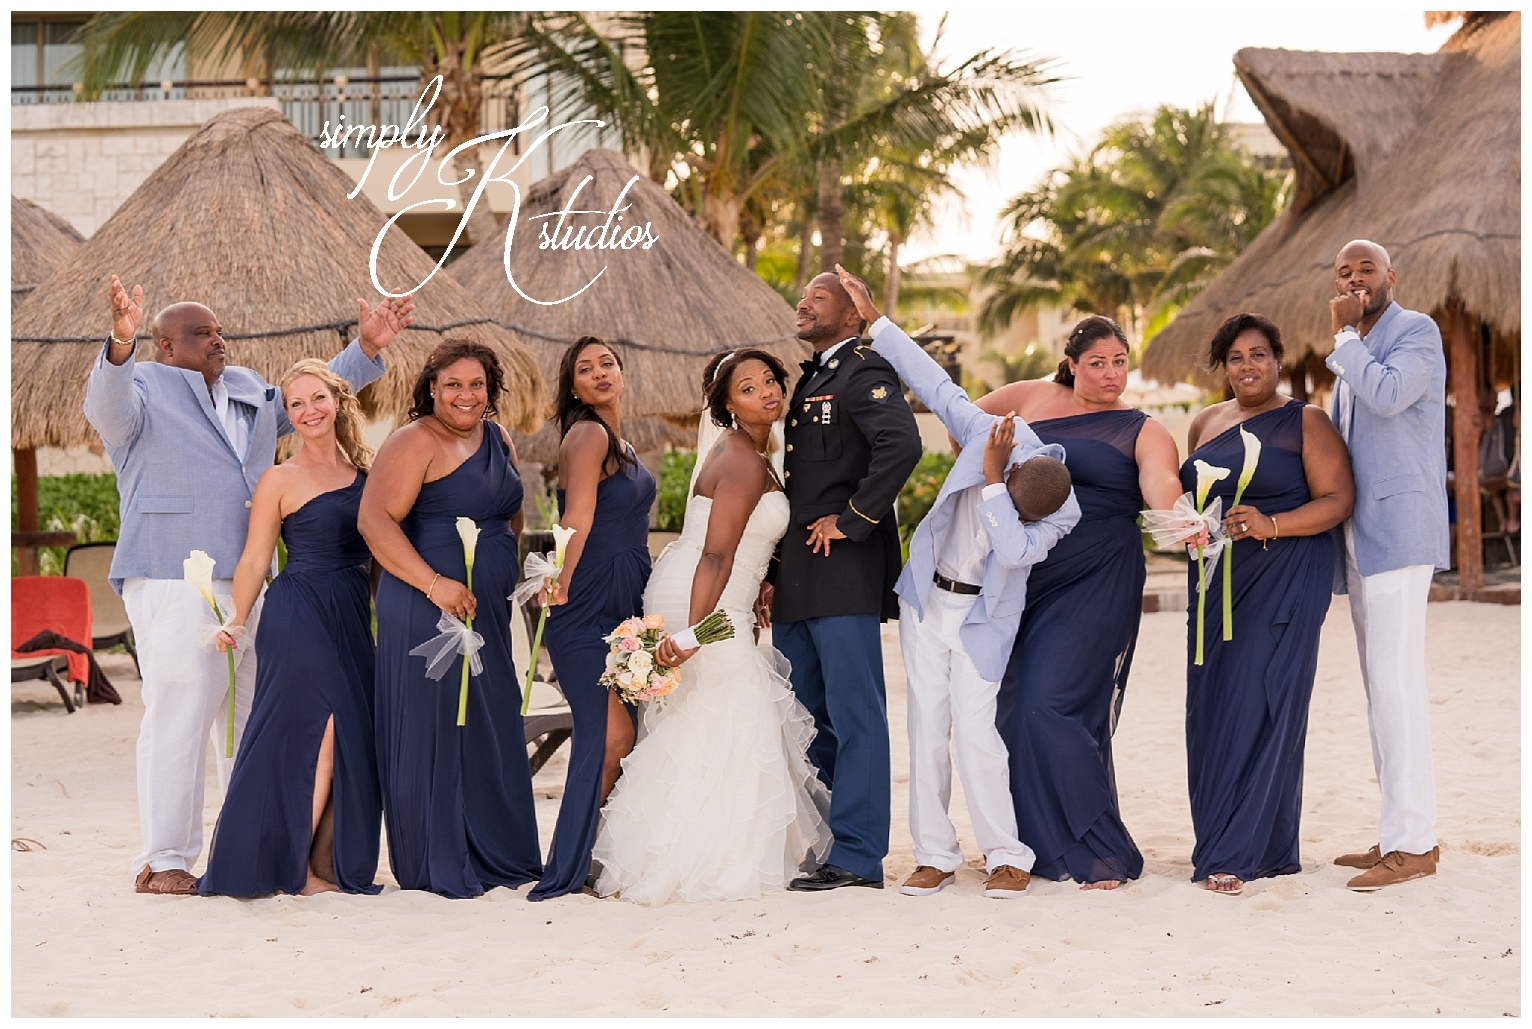 Dreams Riviera Cancun Resort & Spa Wedding.jpg